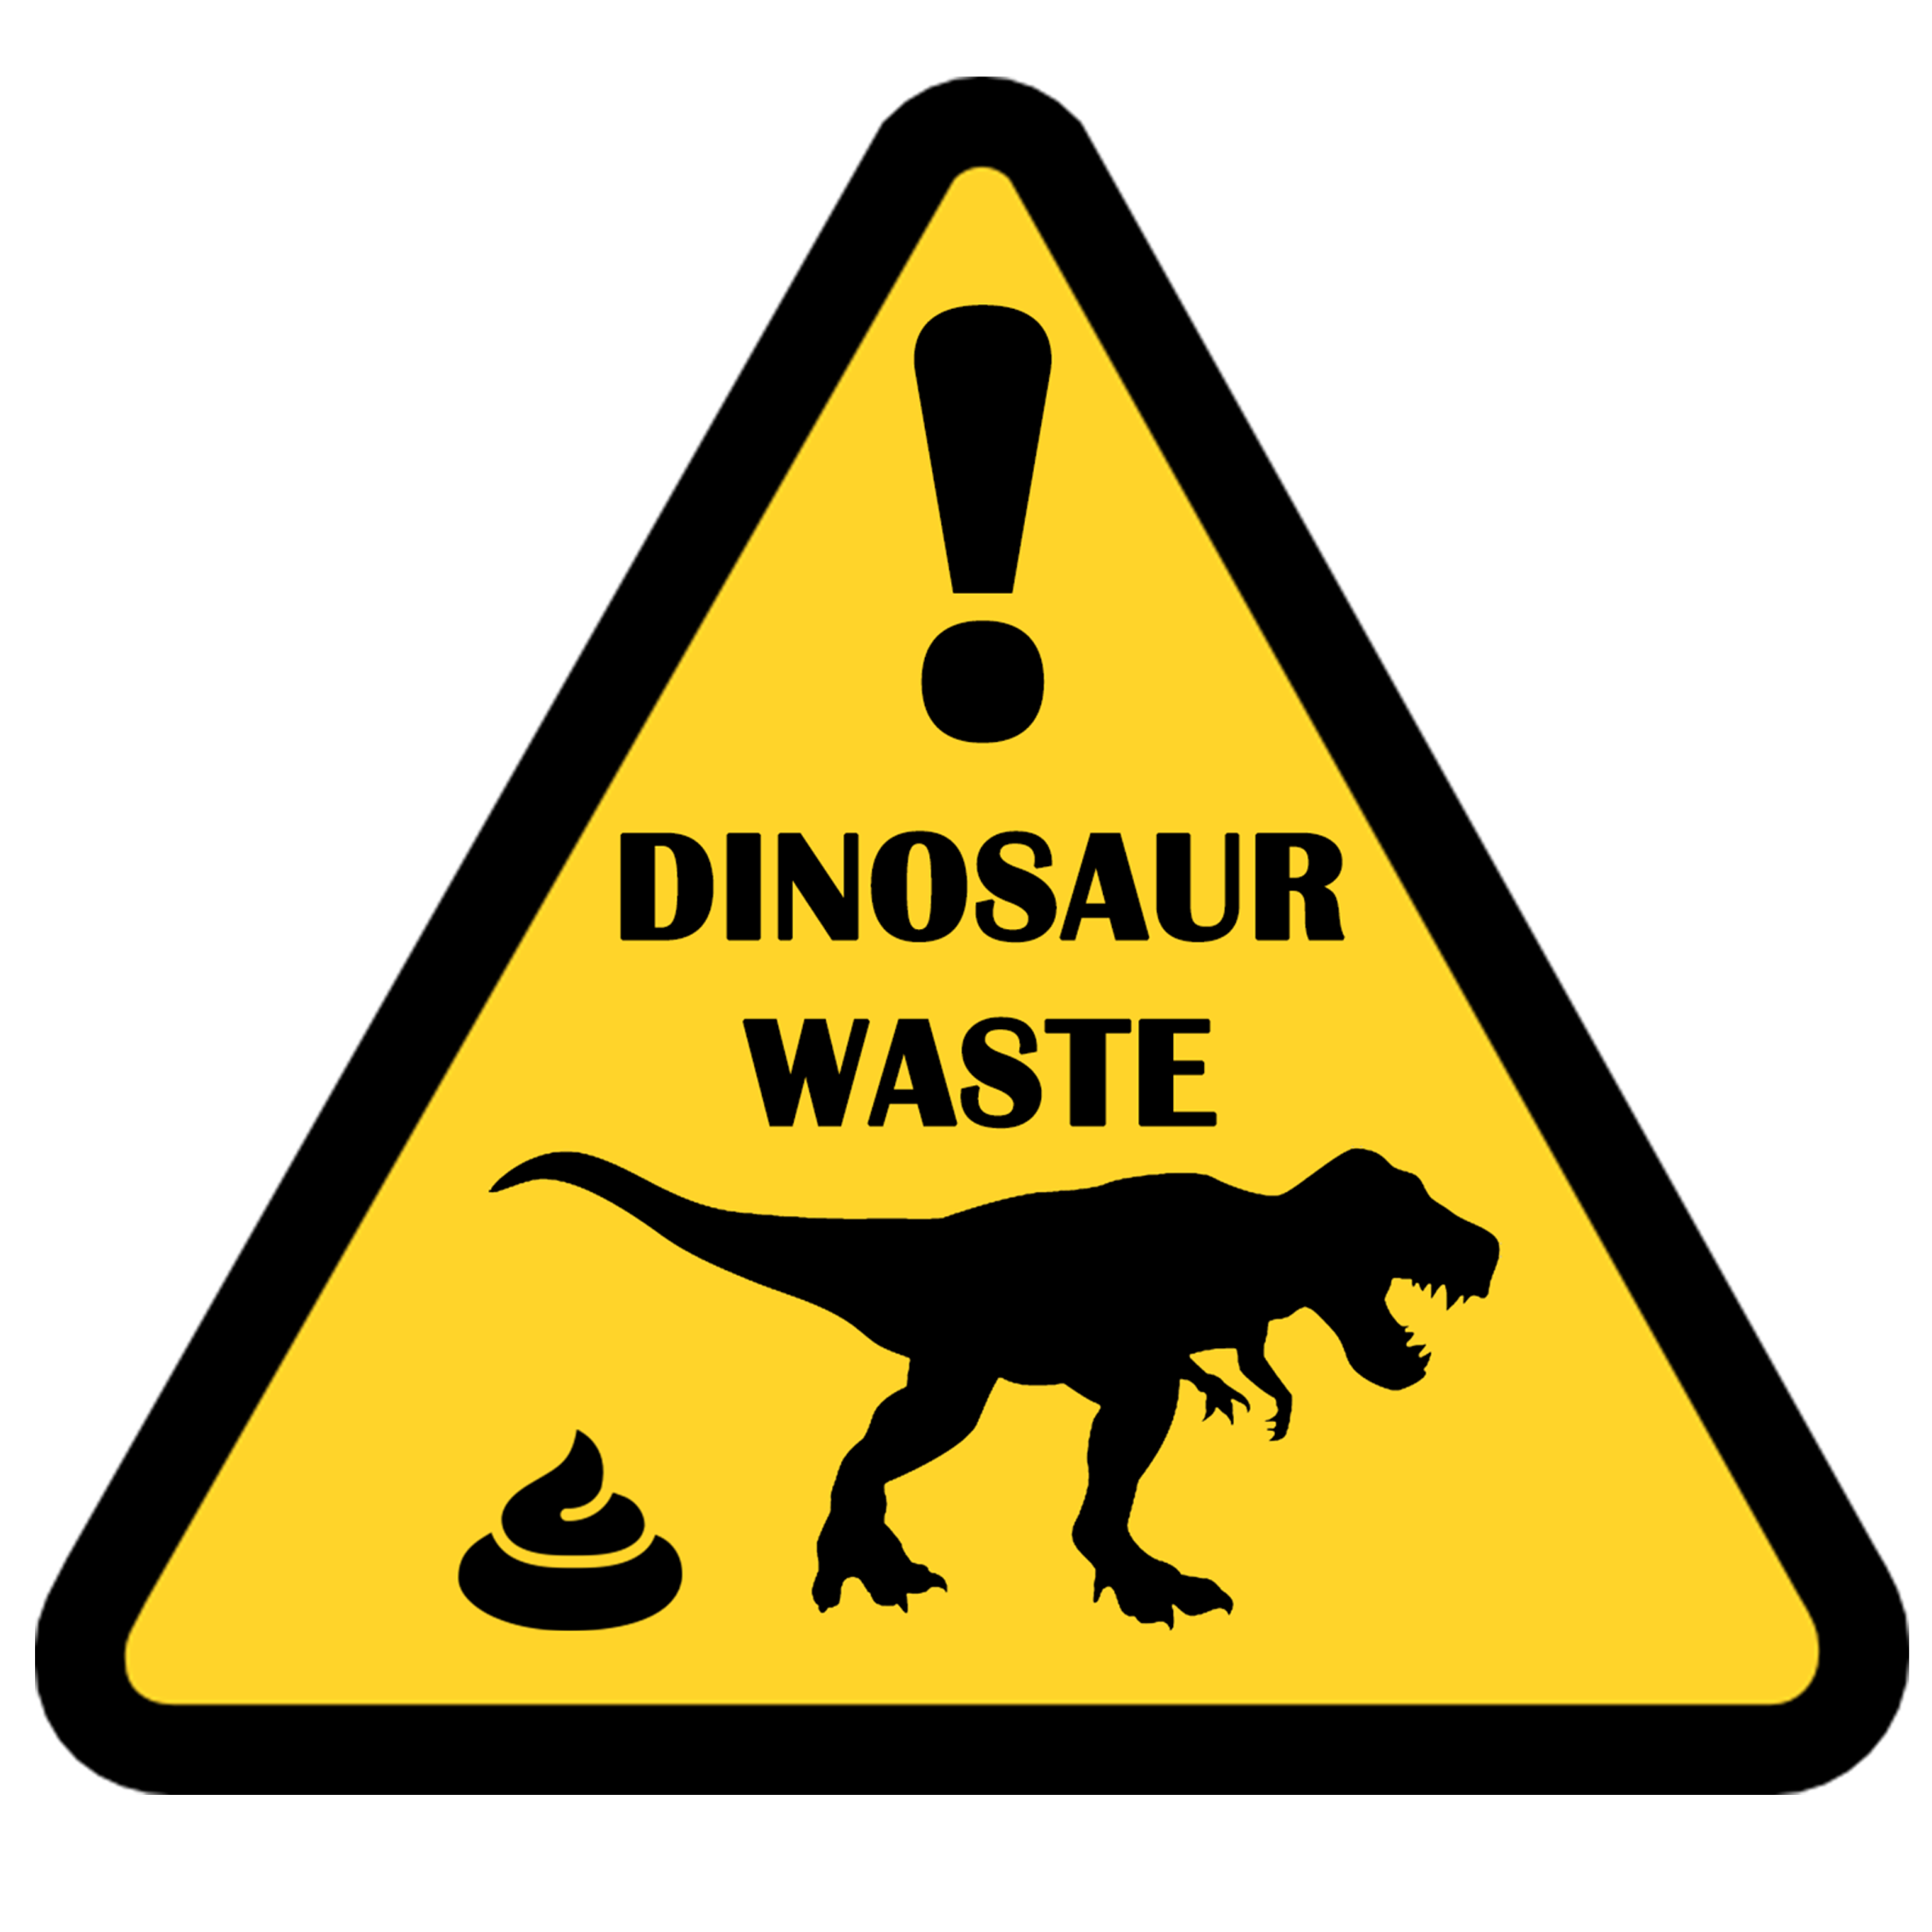 Dinosaur clipart poop. Waste shit funny sign